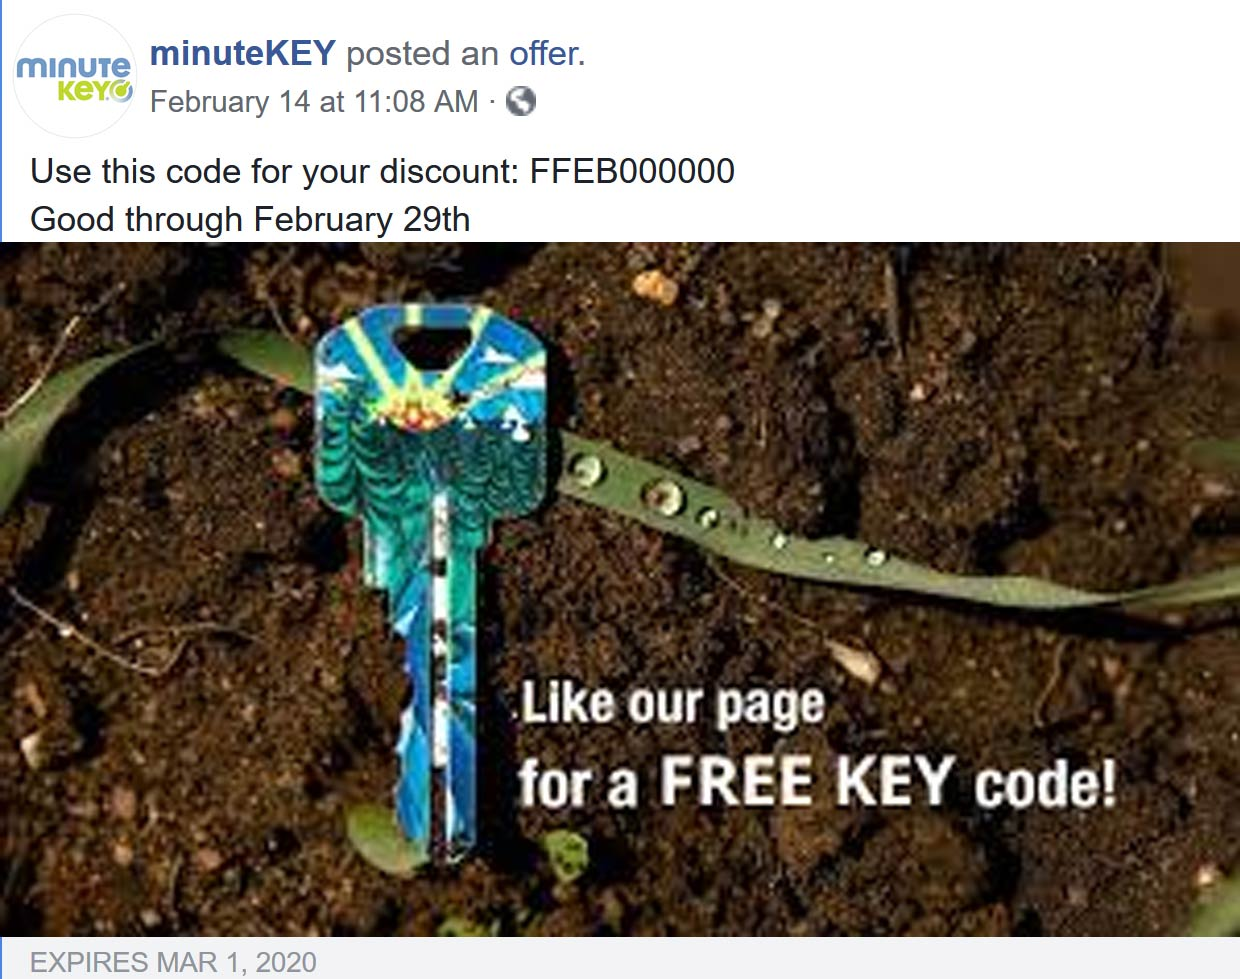 minuteKEY coupons & promo code for [July 2020]